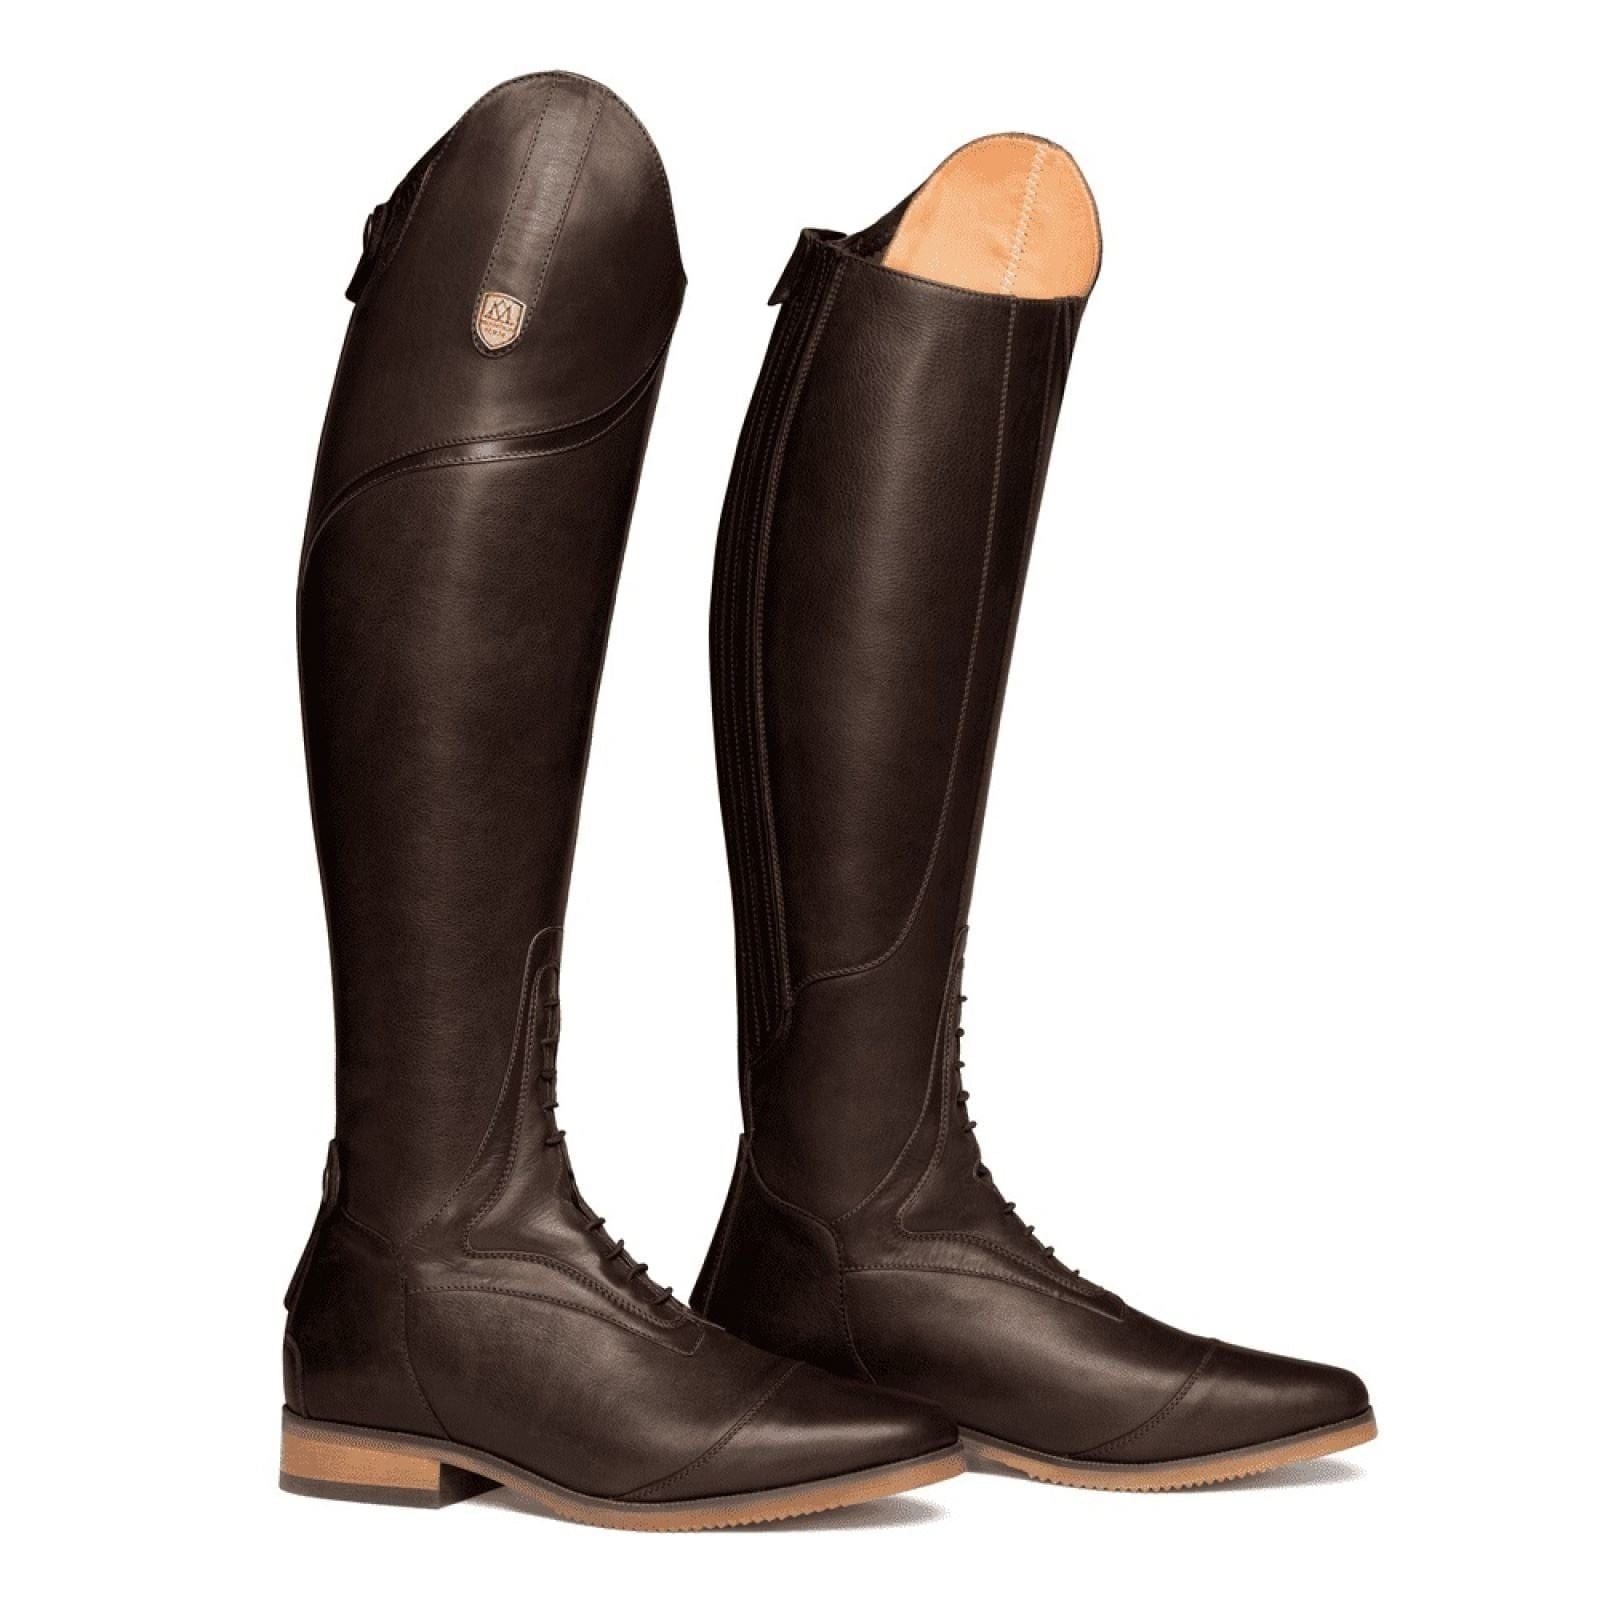 Mountain Horse Sovereign High Rider Long Riding Boots